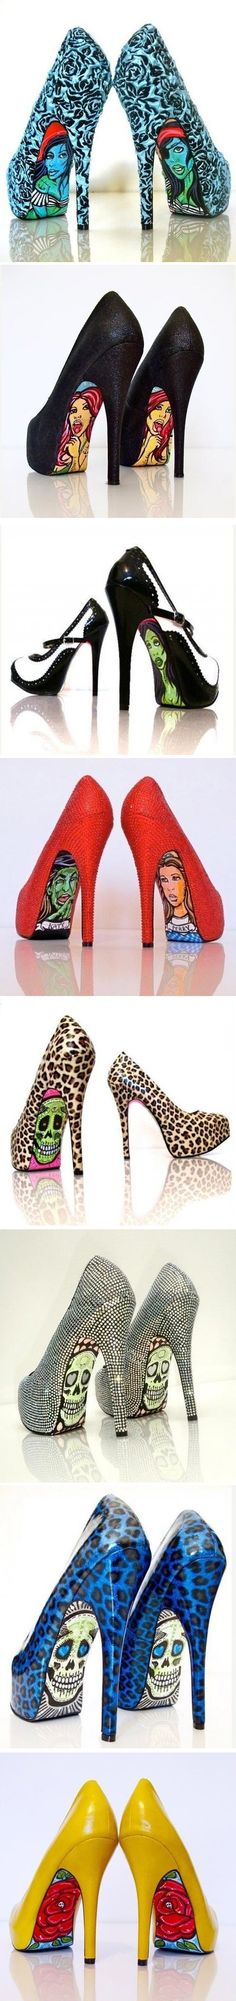 Taylor Reeve is a Californian artist who designs men's clothing for Quiksilver, accessories for Skullcandy, and creates shoes that stand out. She decorates shoe soles with bright unusual pictures like skulls, butterflies and portraits. ♥